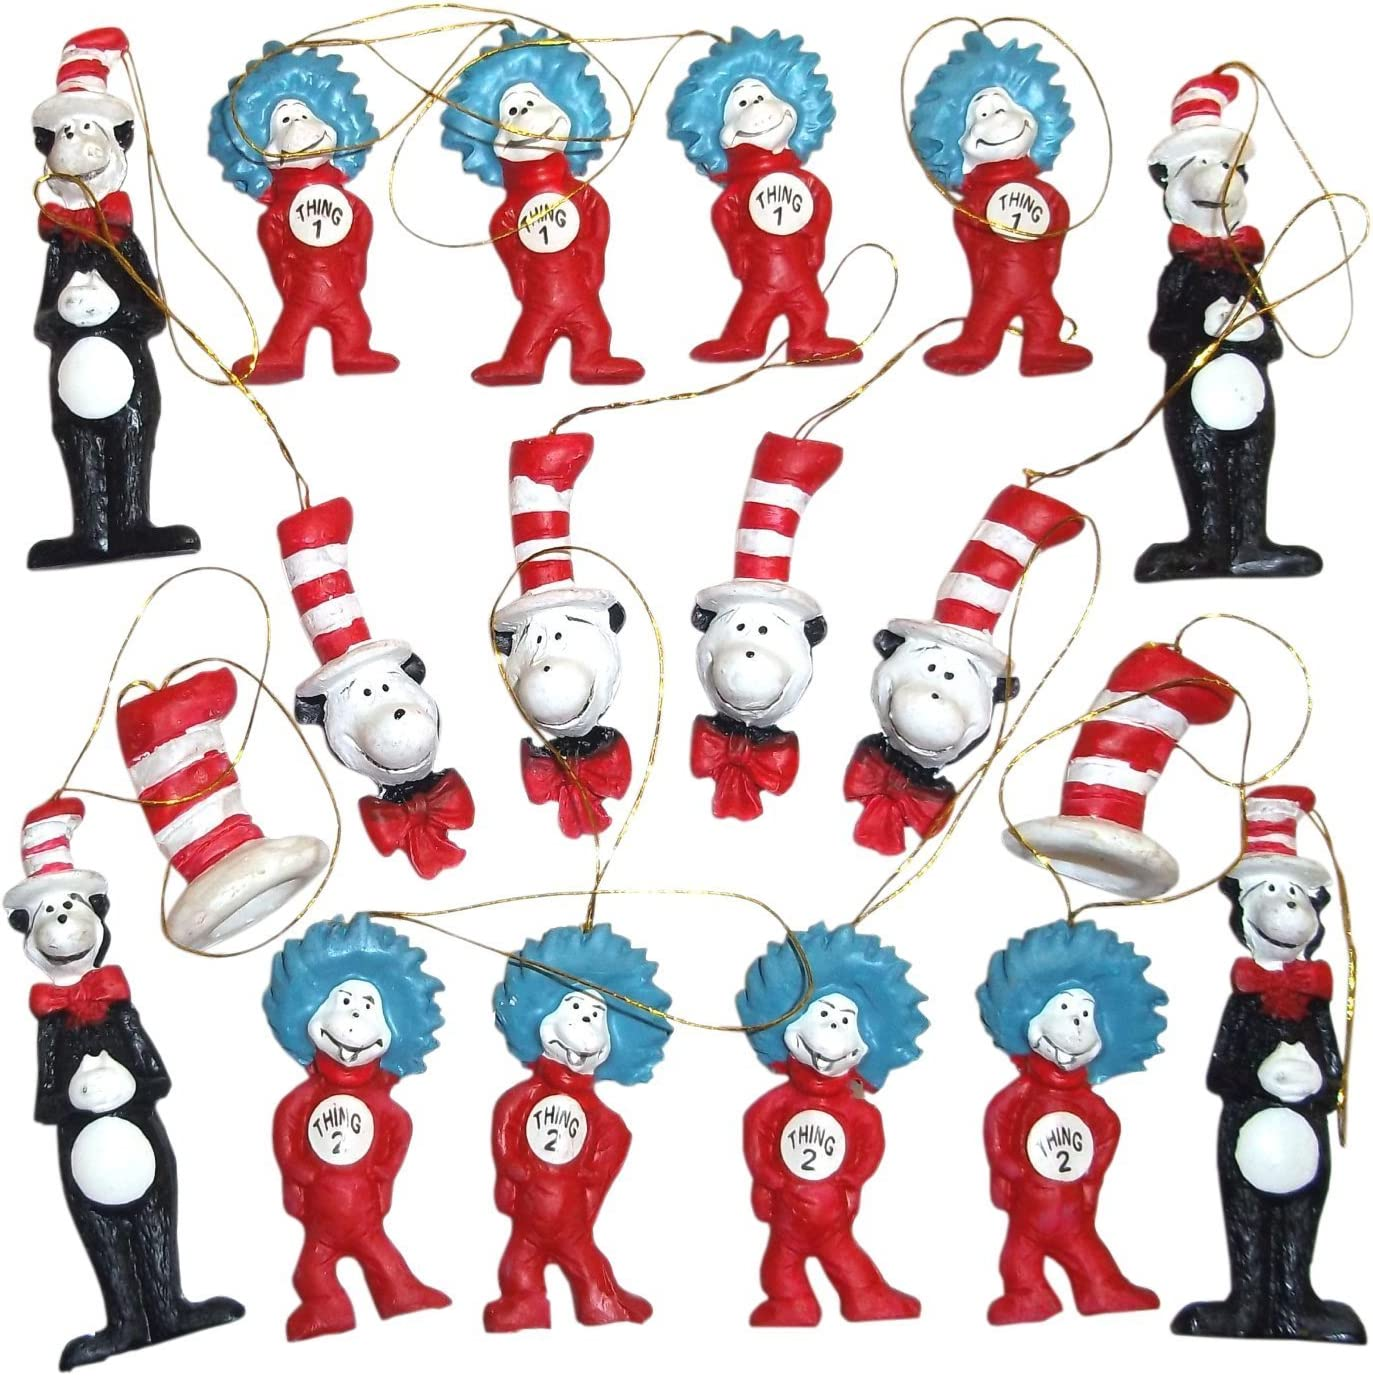 Dr. Seuss The Cat in the Hat Figurine Ornaments, Set of 18